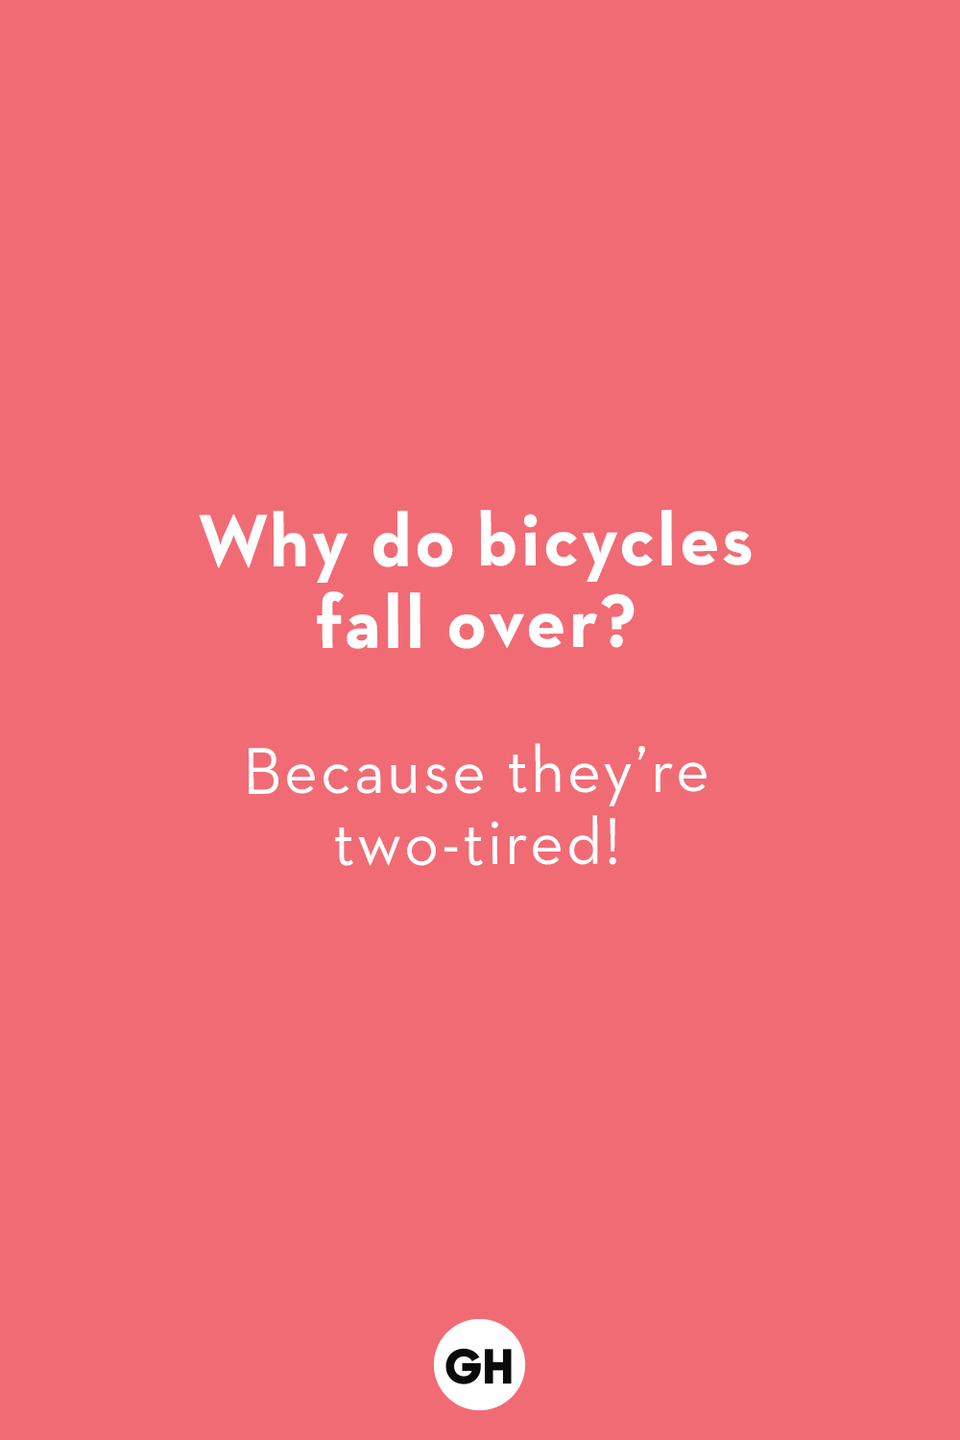 <p>Because they're two-tired!</p>